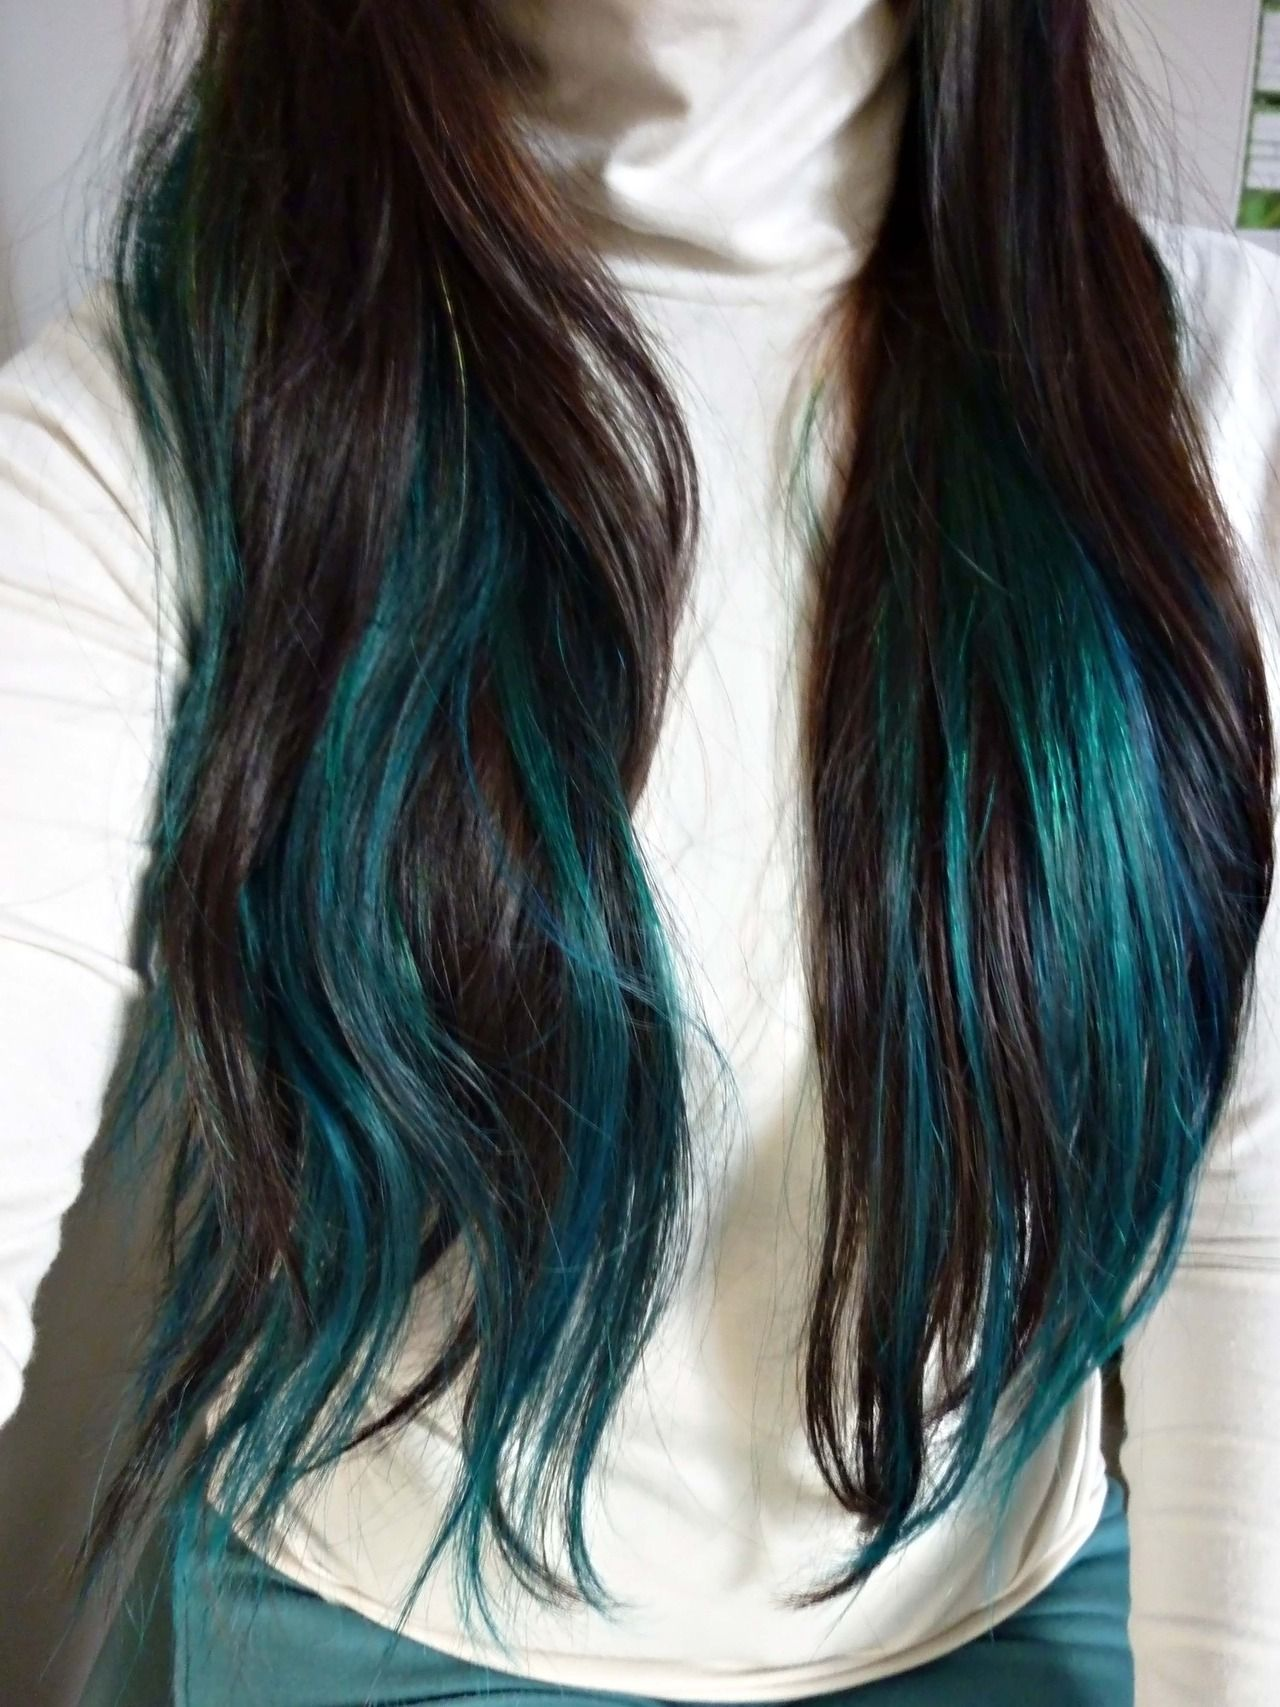 Base Colour Of My Hair Is Dark Brown I Bleached Thrice Using La Riche Directions Hair Lightening Kit 30 Vol Before Dyeing Ov Teal Hair Hair Styles Green Hair